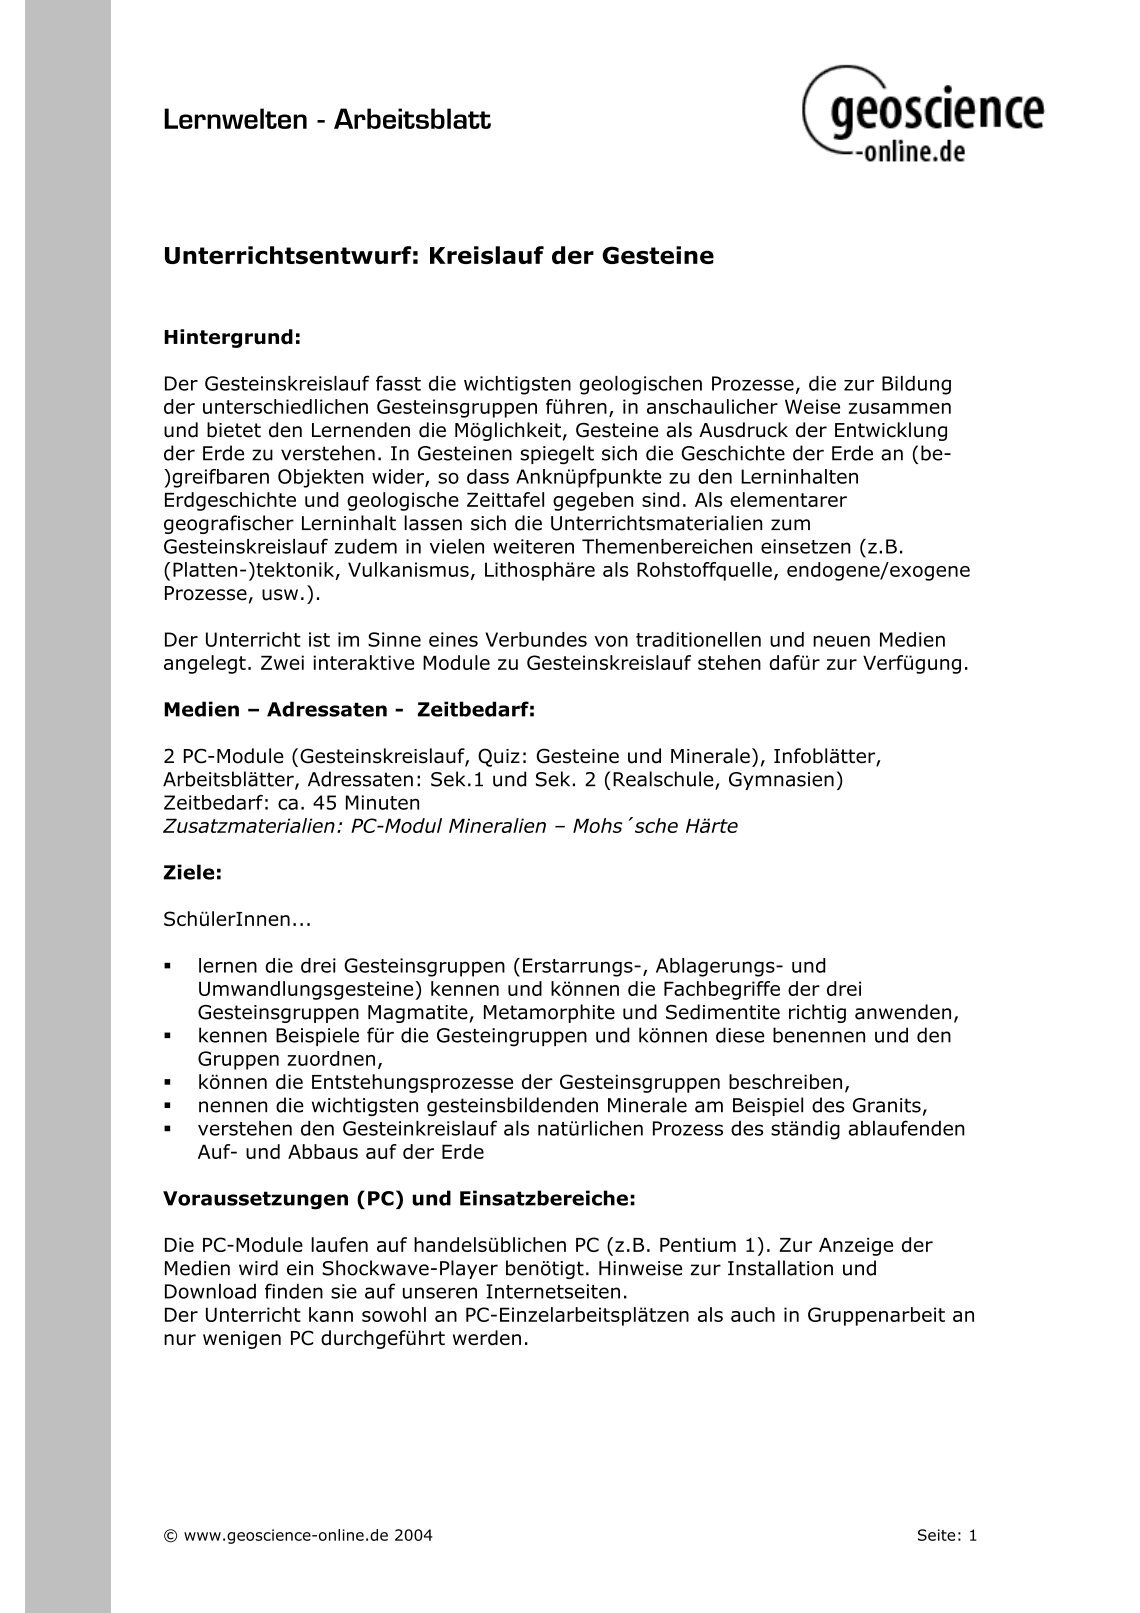 Old Fashioned Geowissenschaft Arbeitsblatt Pictures - Kindergarten ...